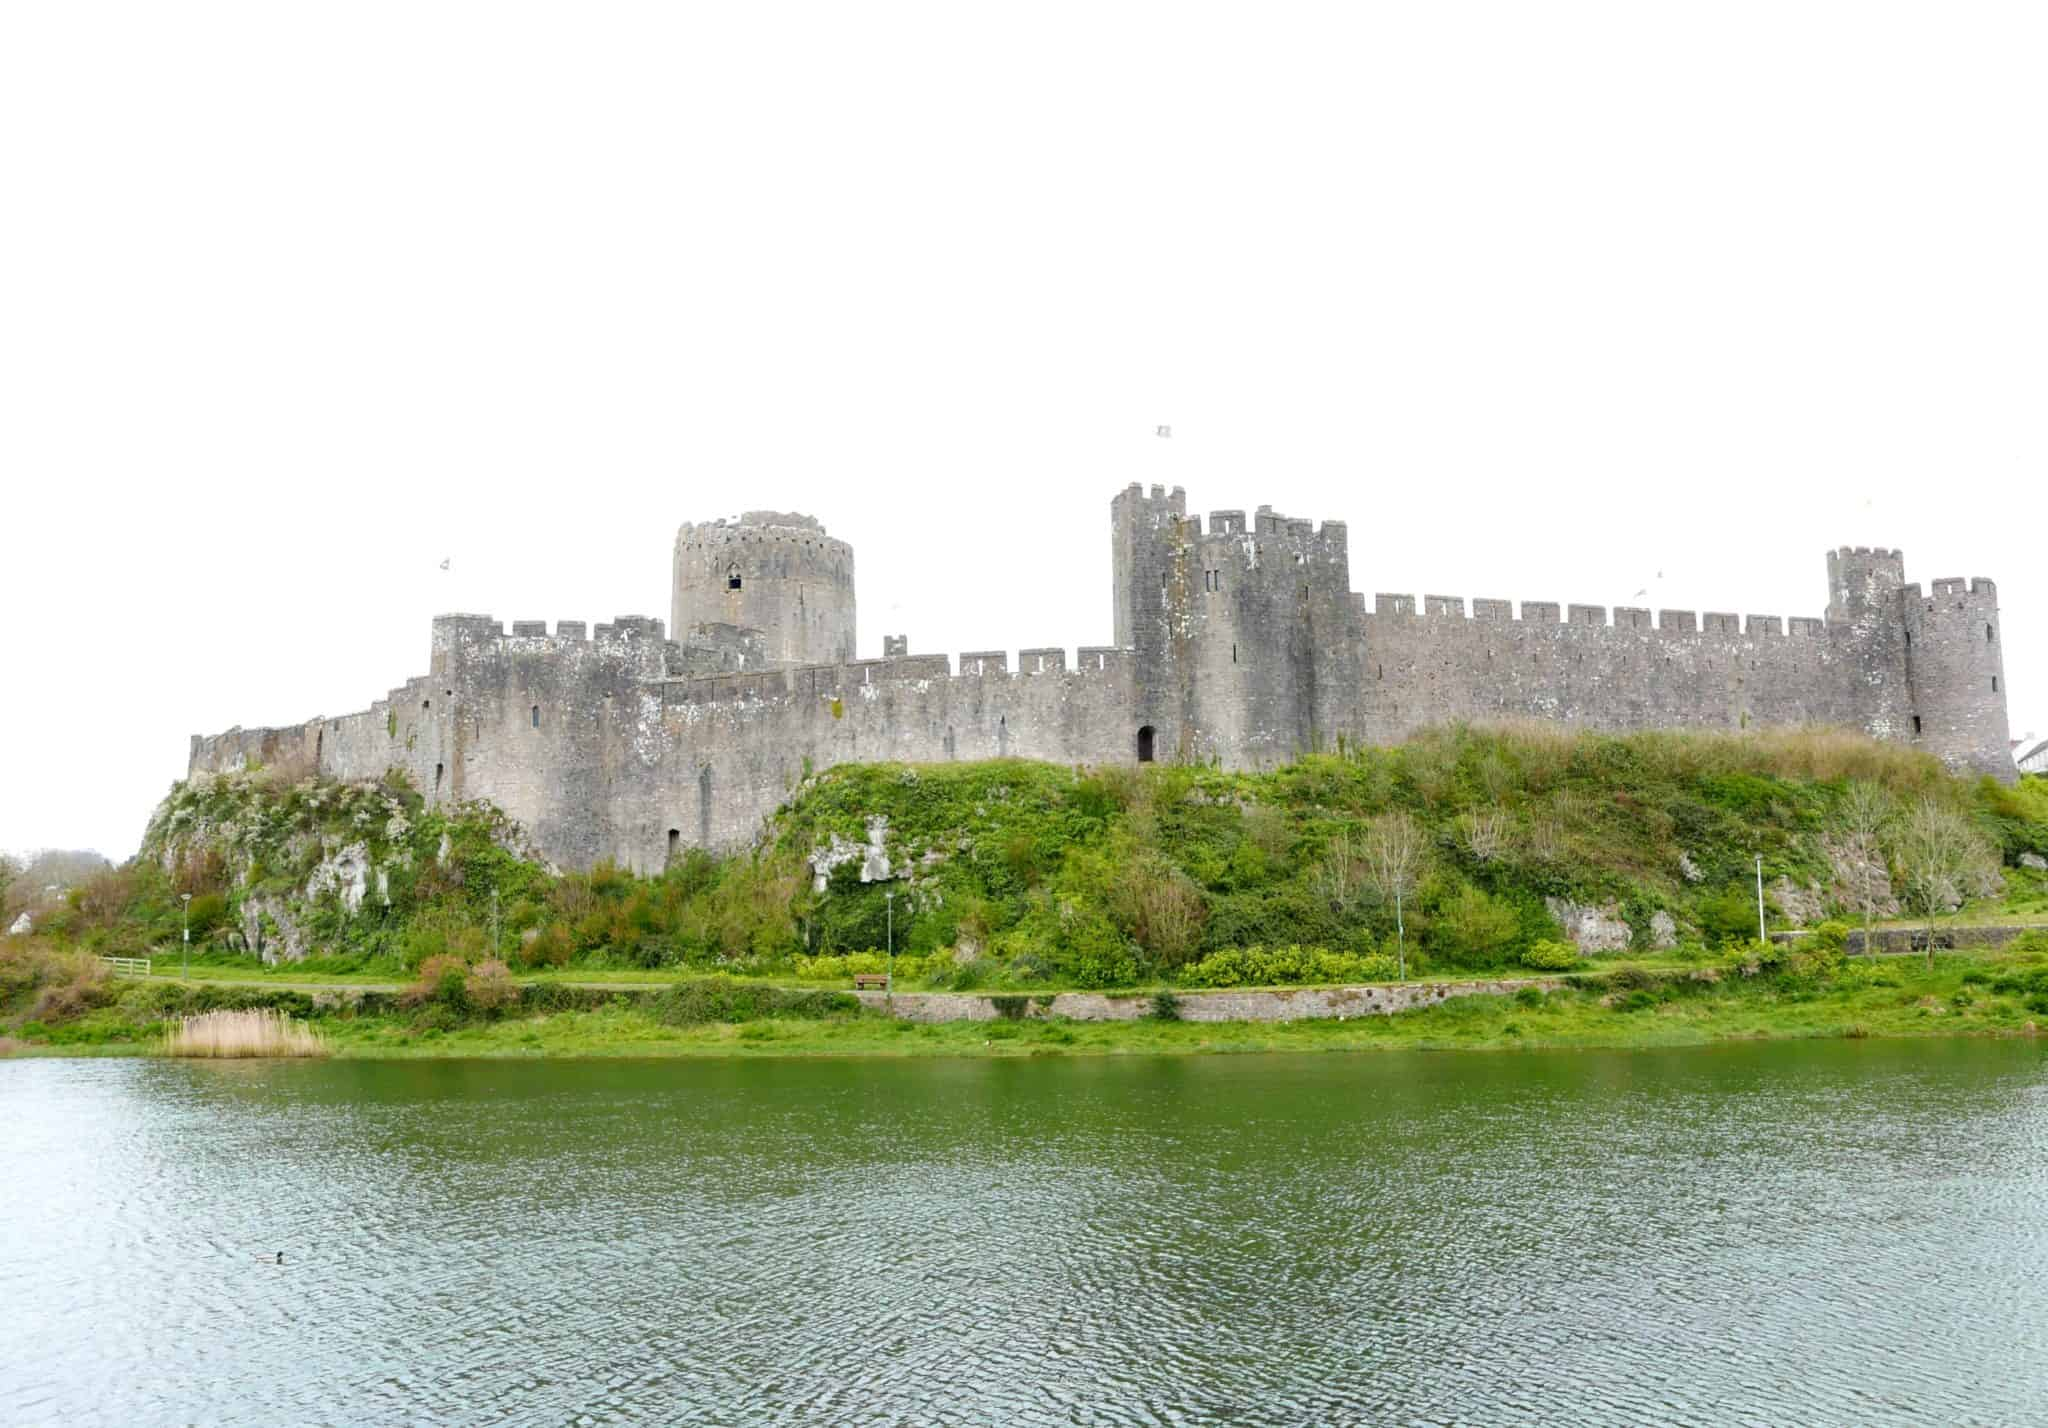 Looking at Pembroke Castle over the Water | My Travel Monkey